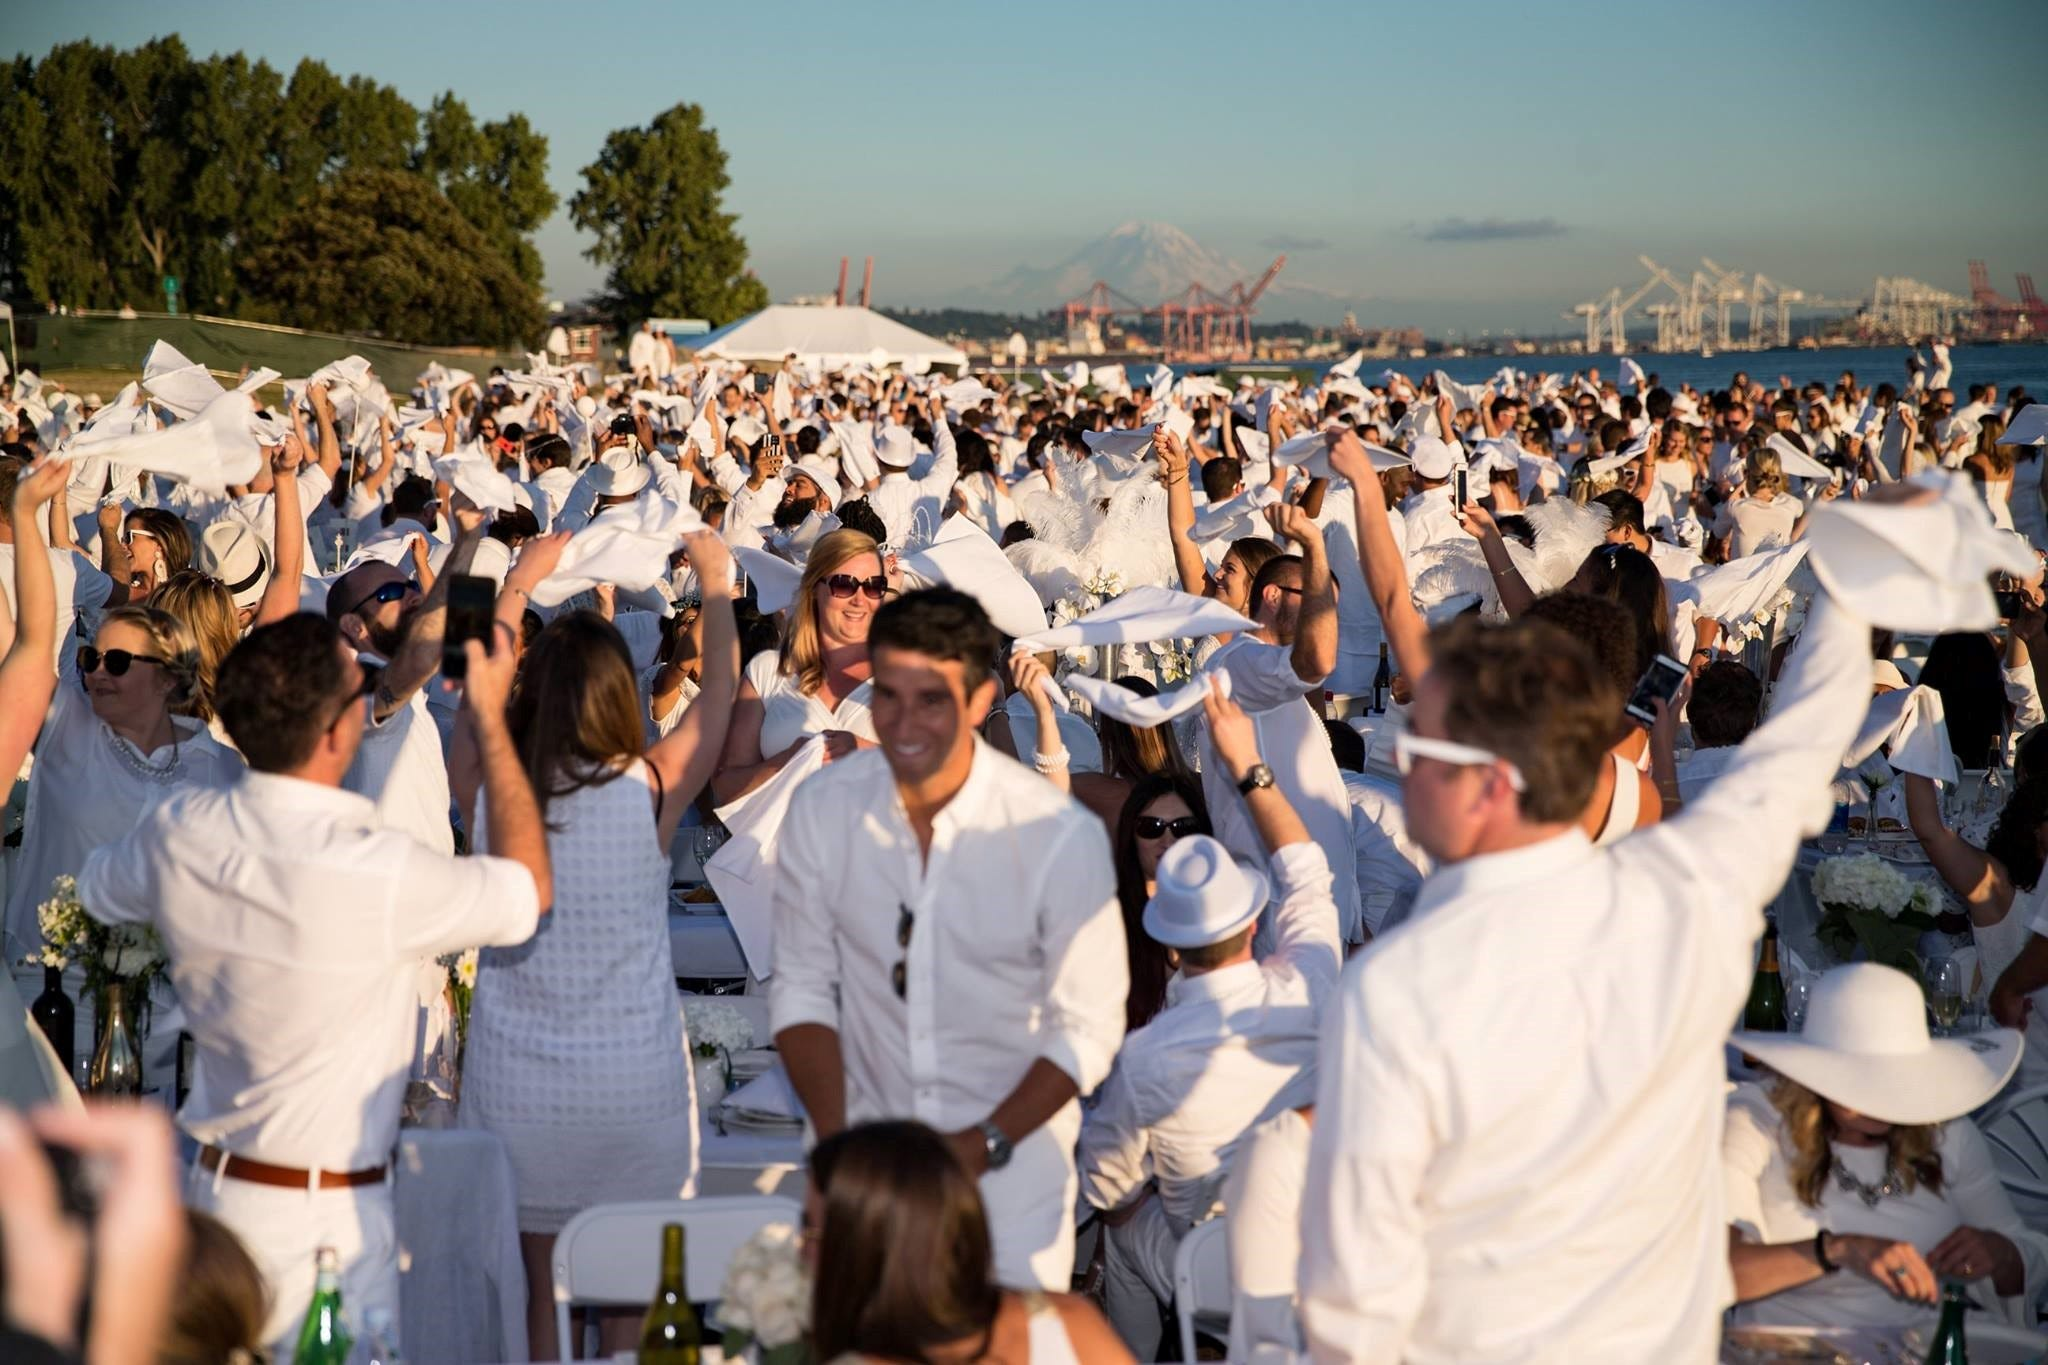 Dîner en Blanc: 1,000 guests dressed all in white come together for picnic like no other | The Commercial Appeal